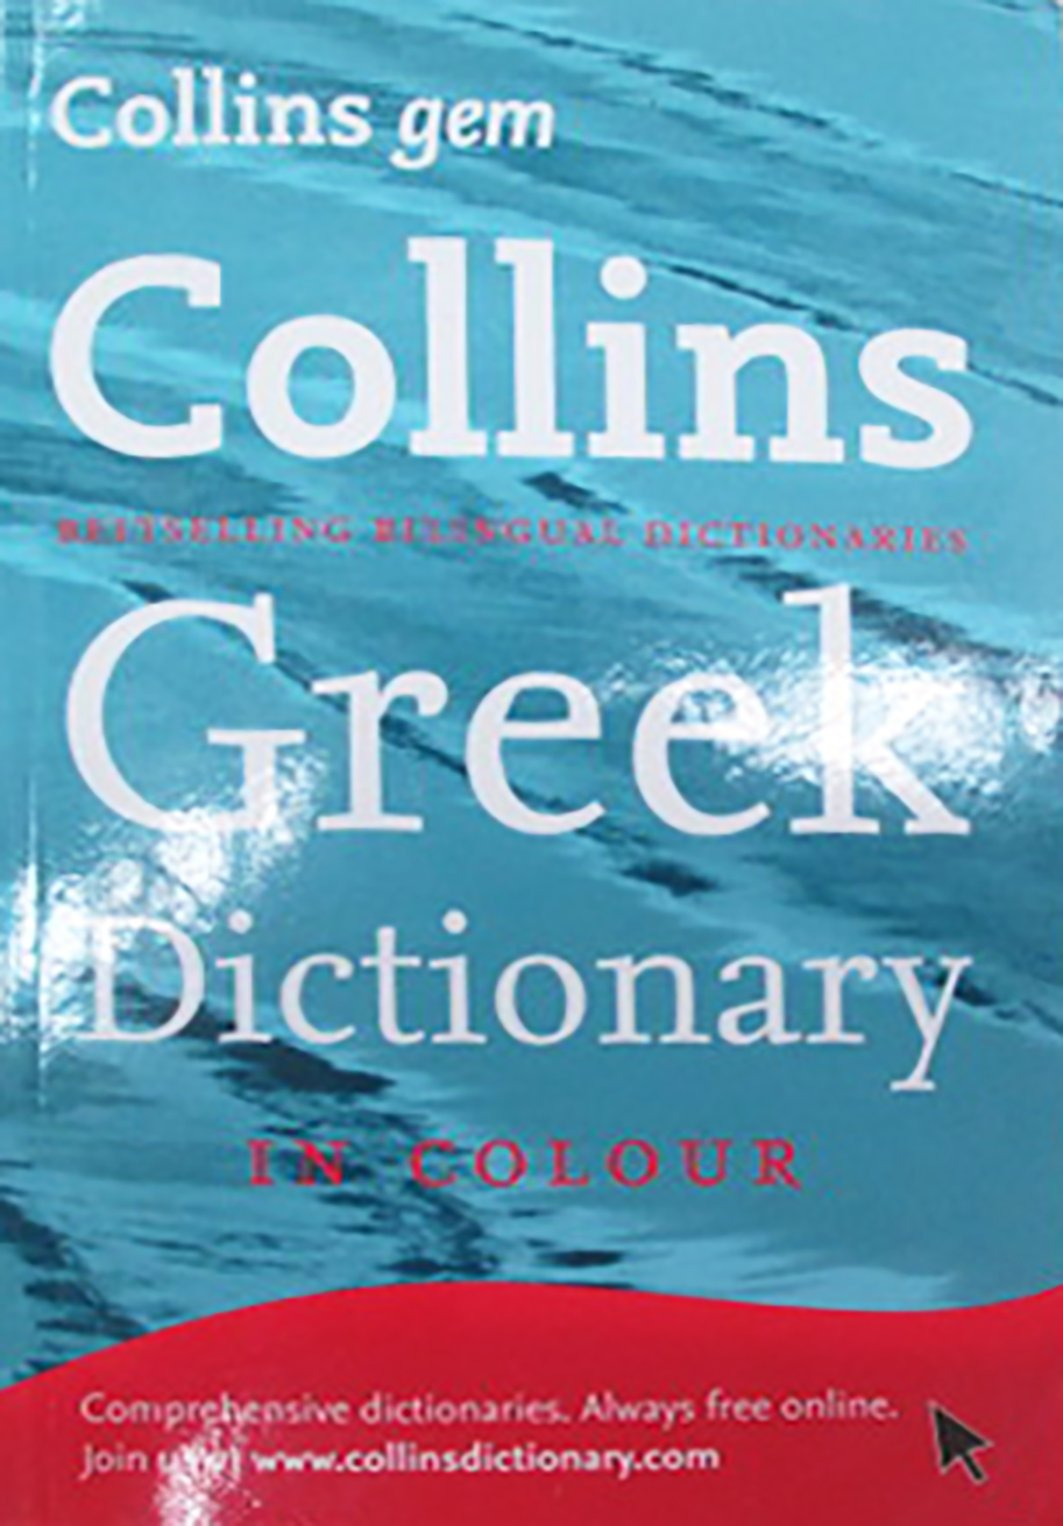 Collins Greek Gem Dictionary: The world's favourite mini dictionary (Collins  Gem): Amazon.co.uk: Collins Dictionaries: 9780007289608: Books